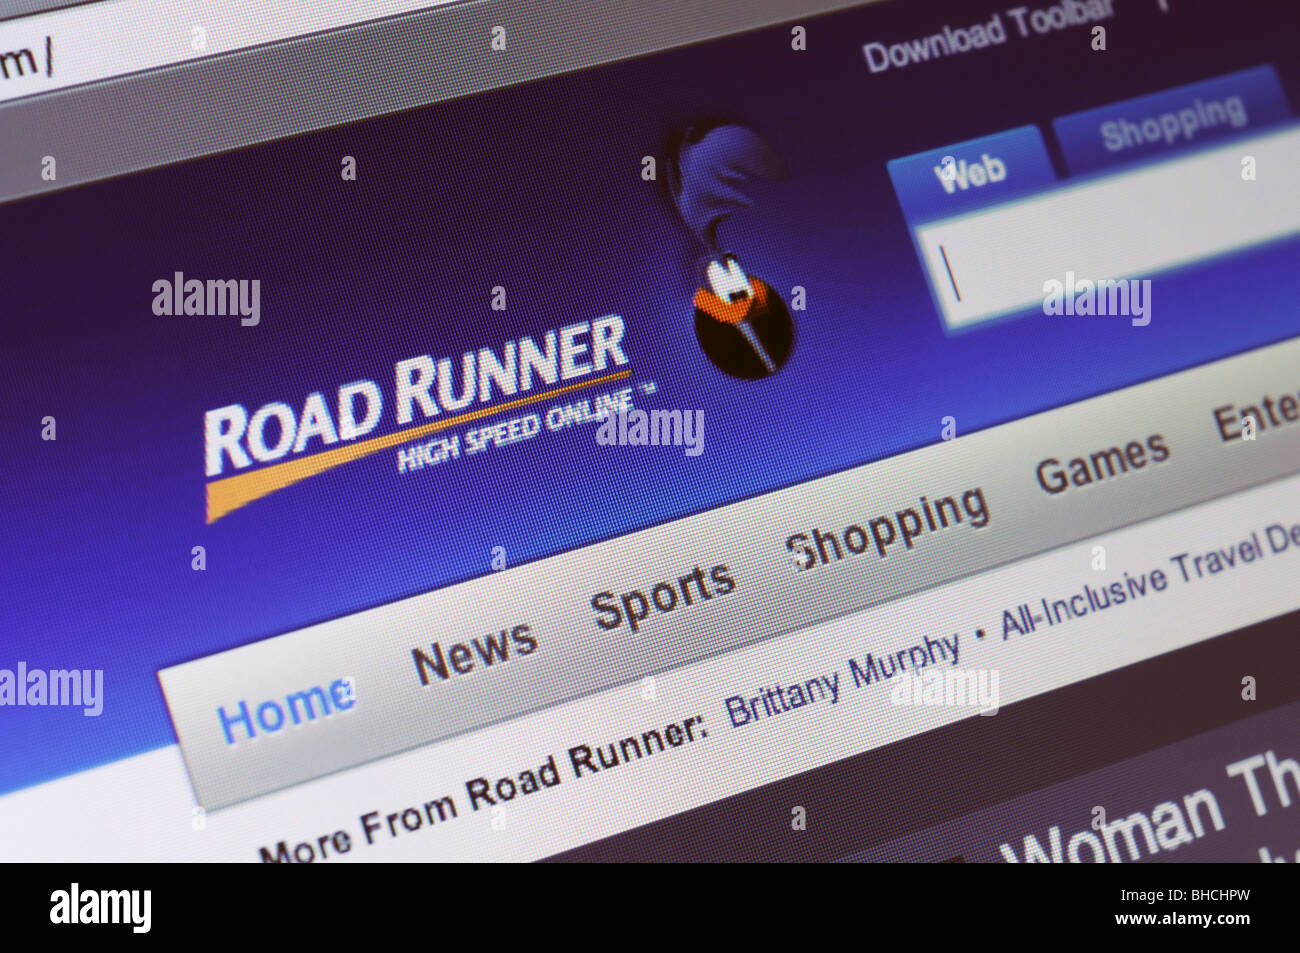 RoadRunner internet and cable TV provider website - Stock Image